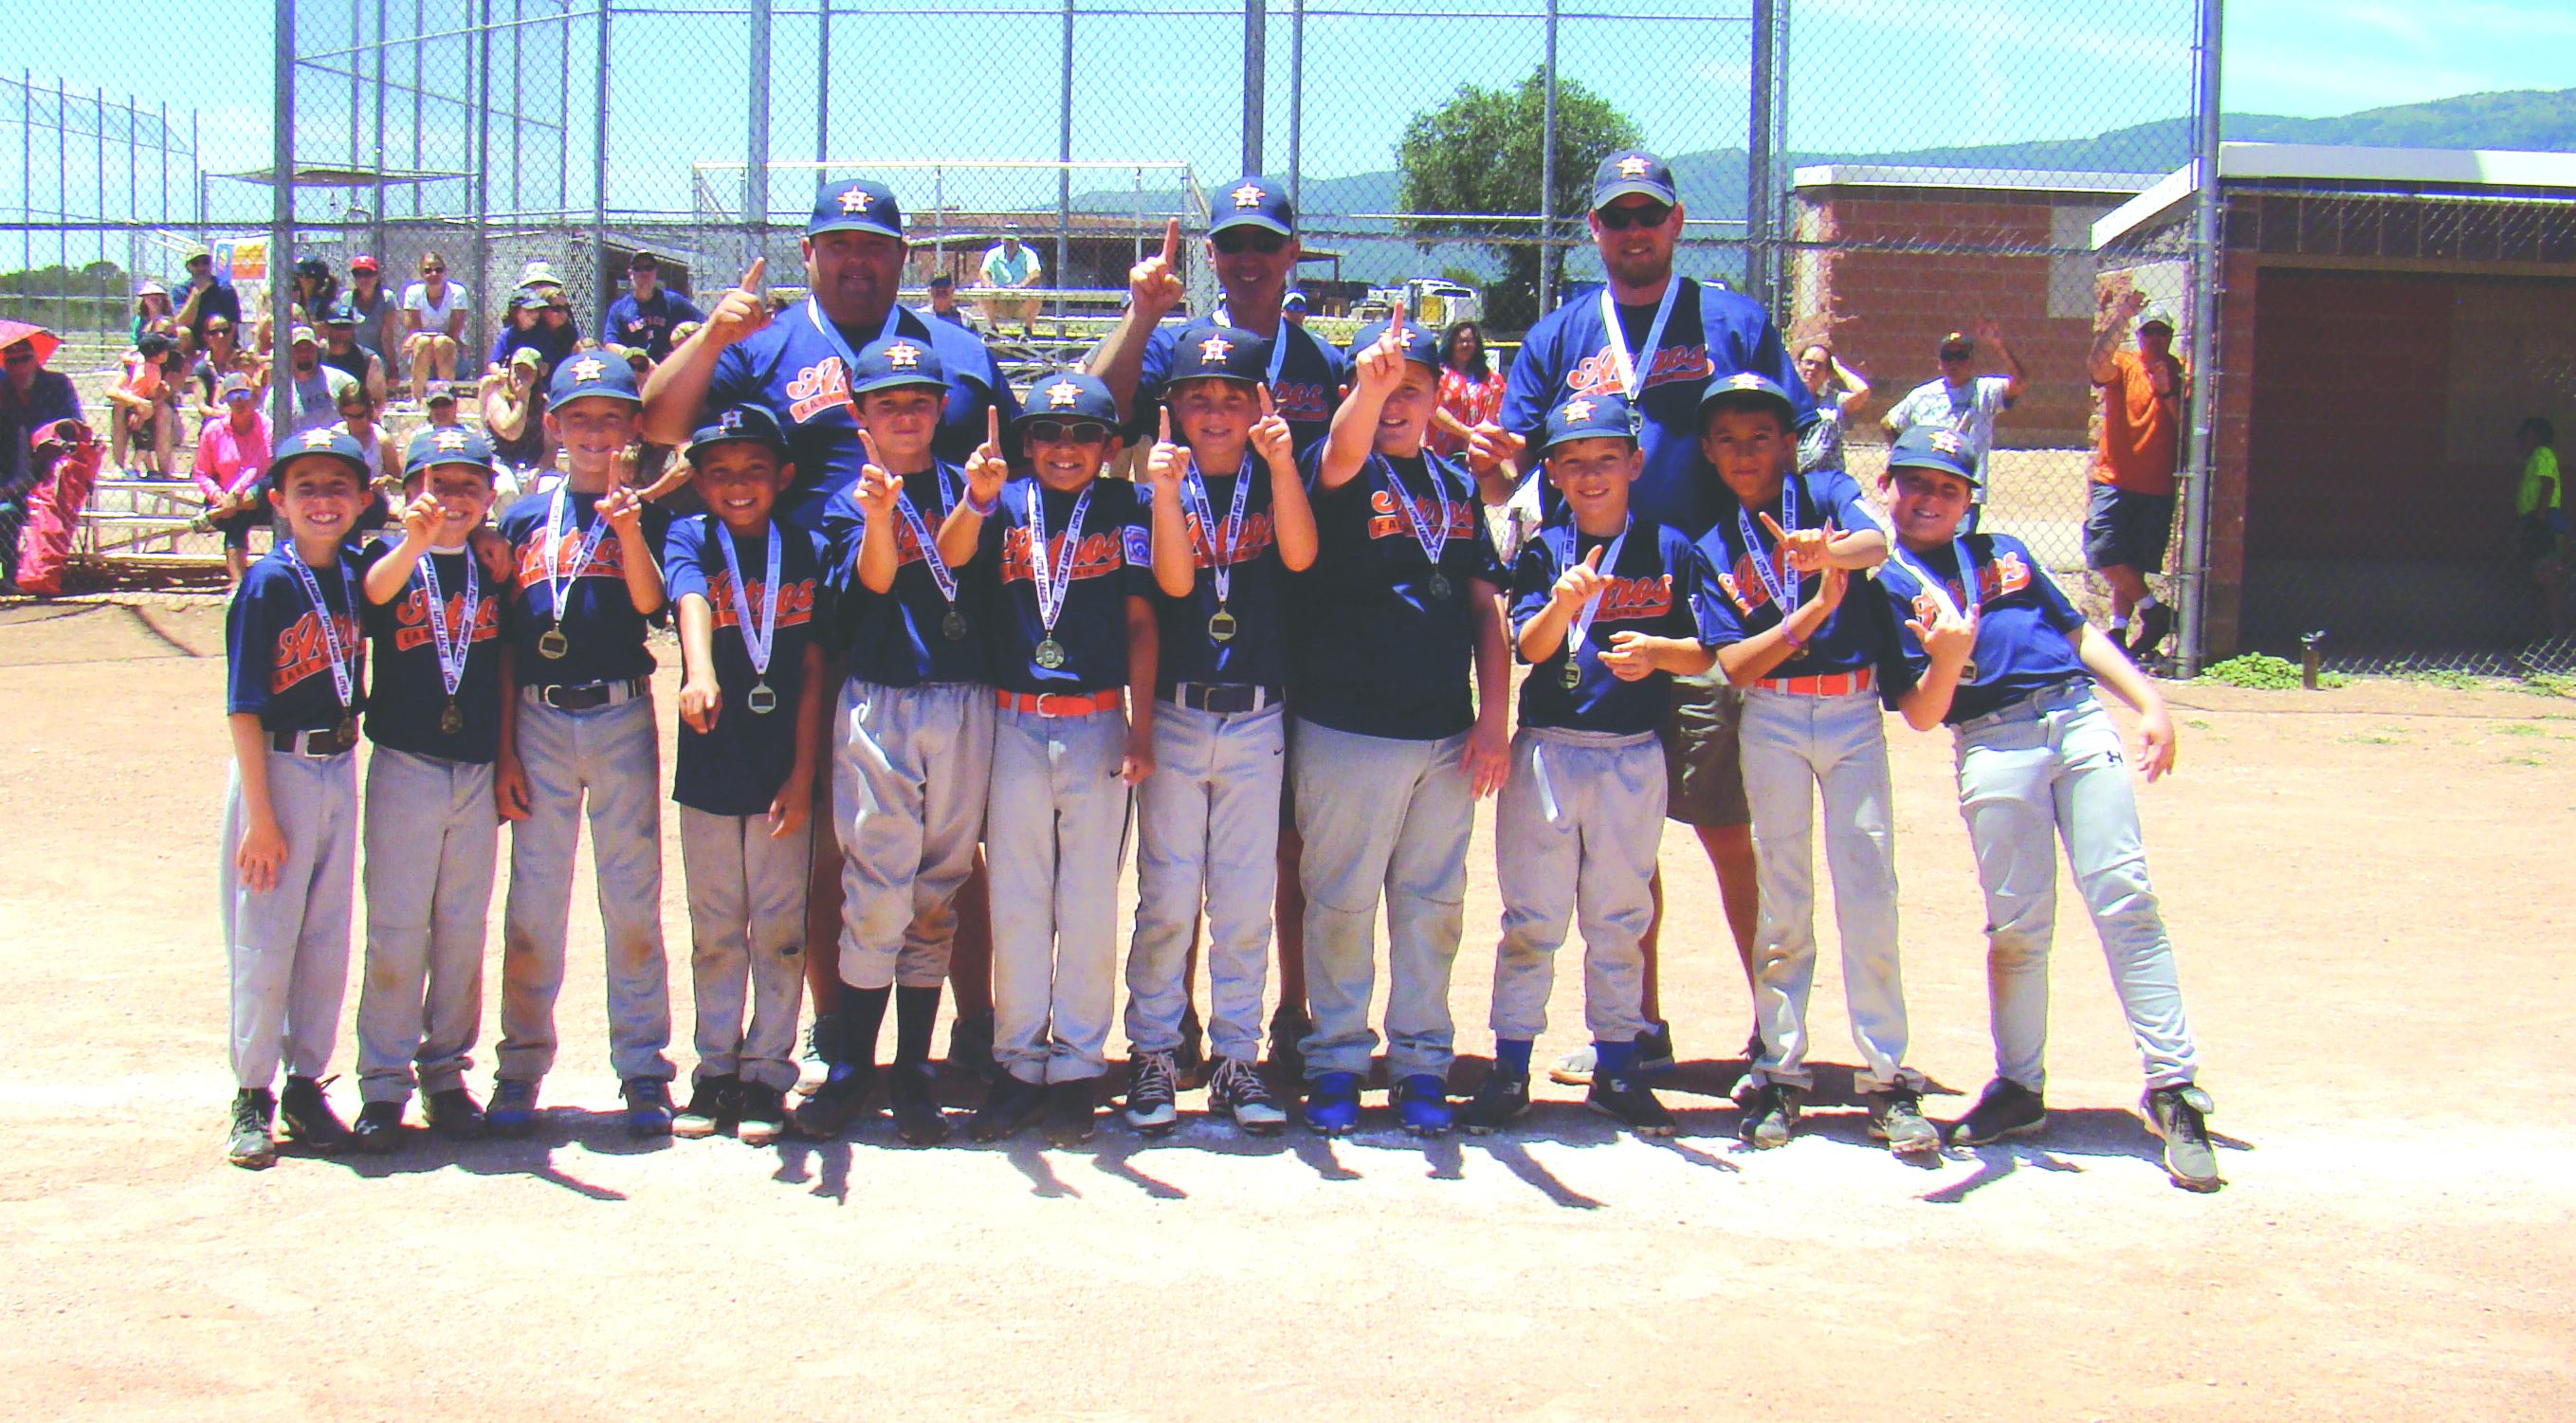 Walk-off hit gives East Mtn. Little League Astros championship